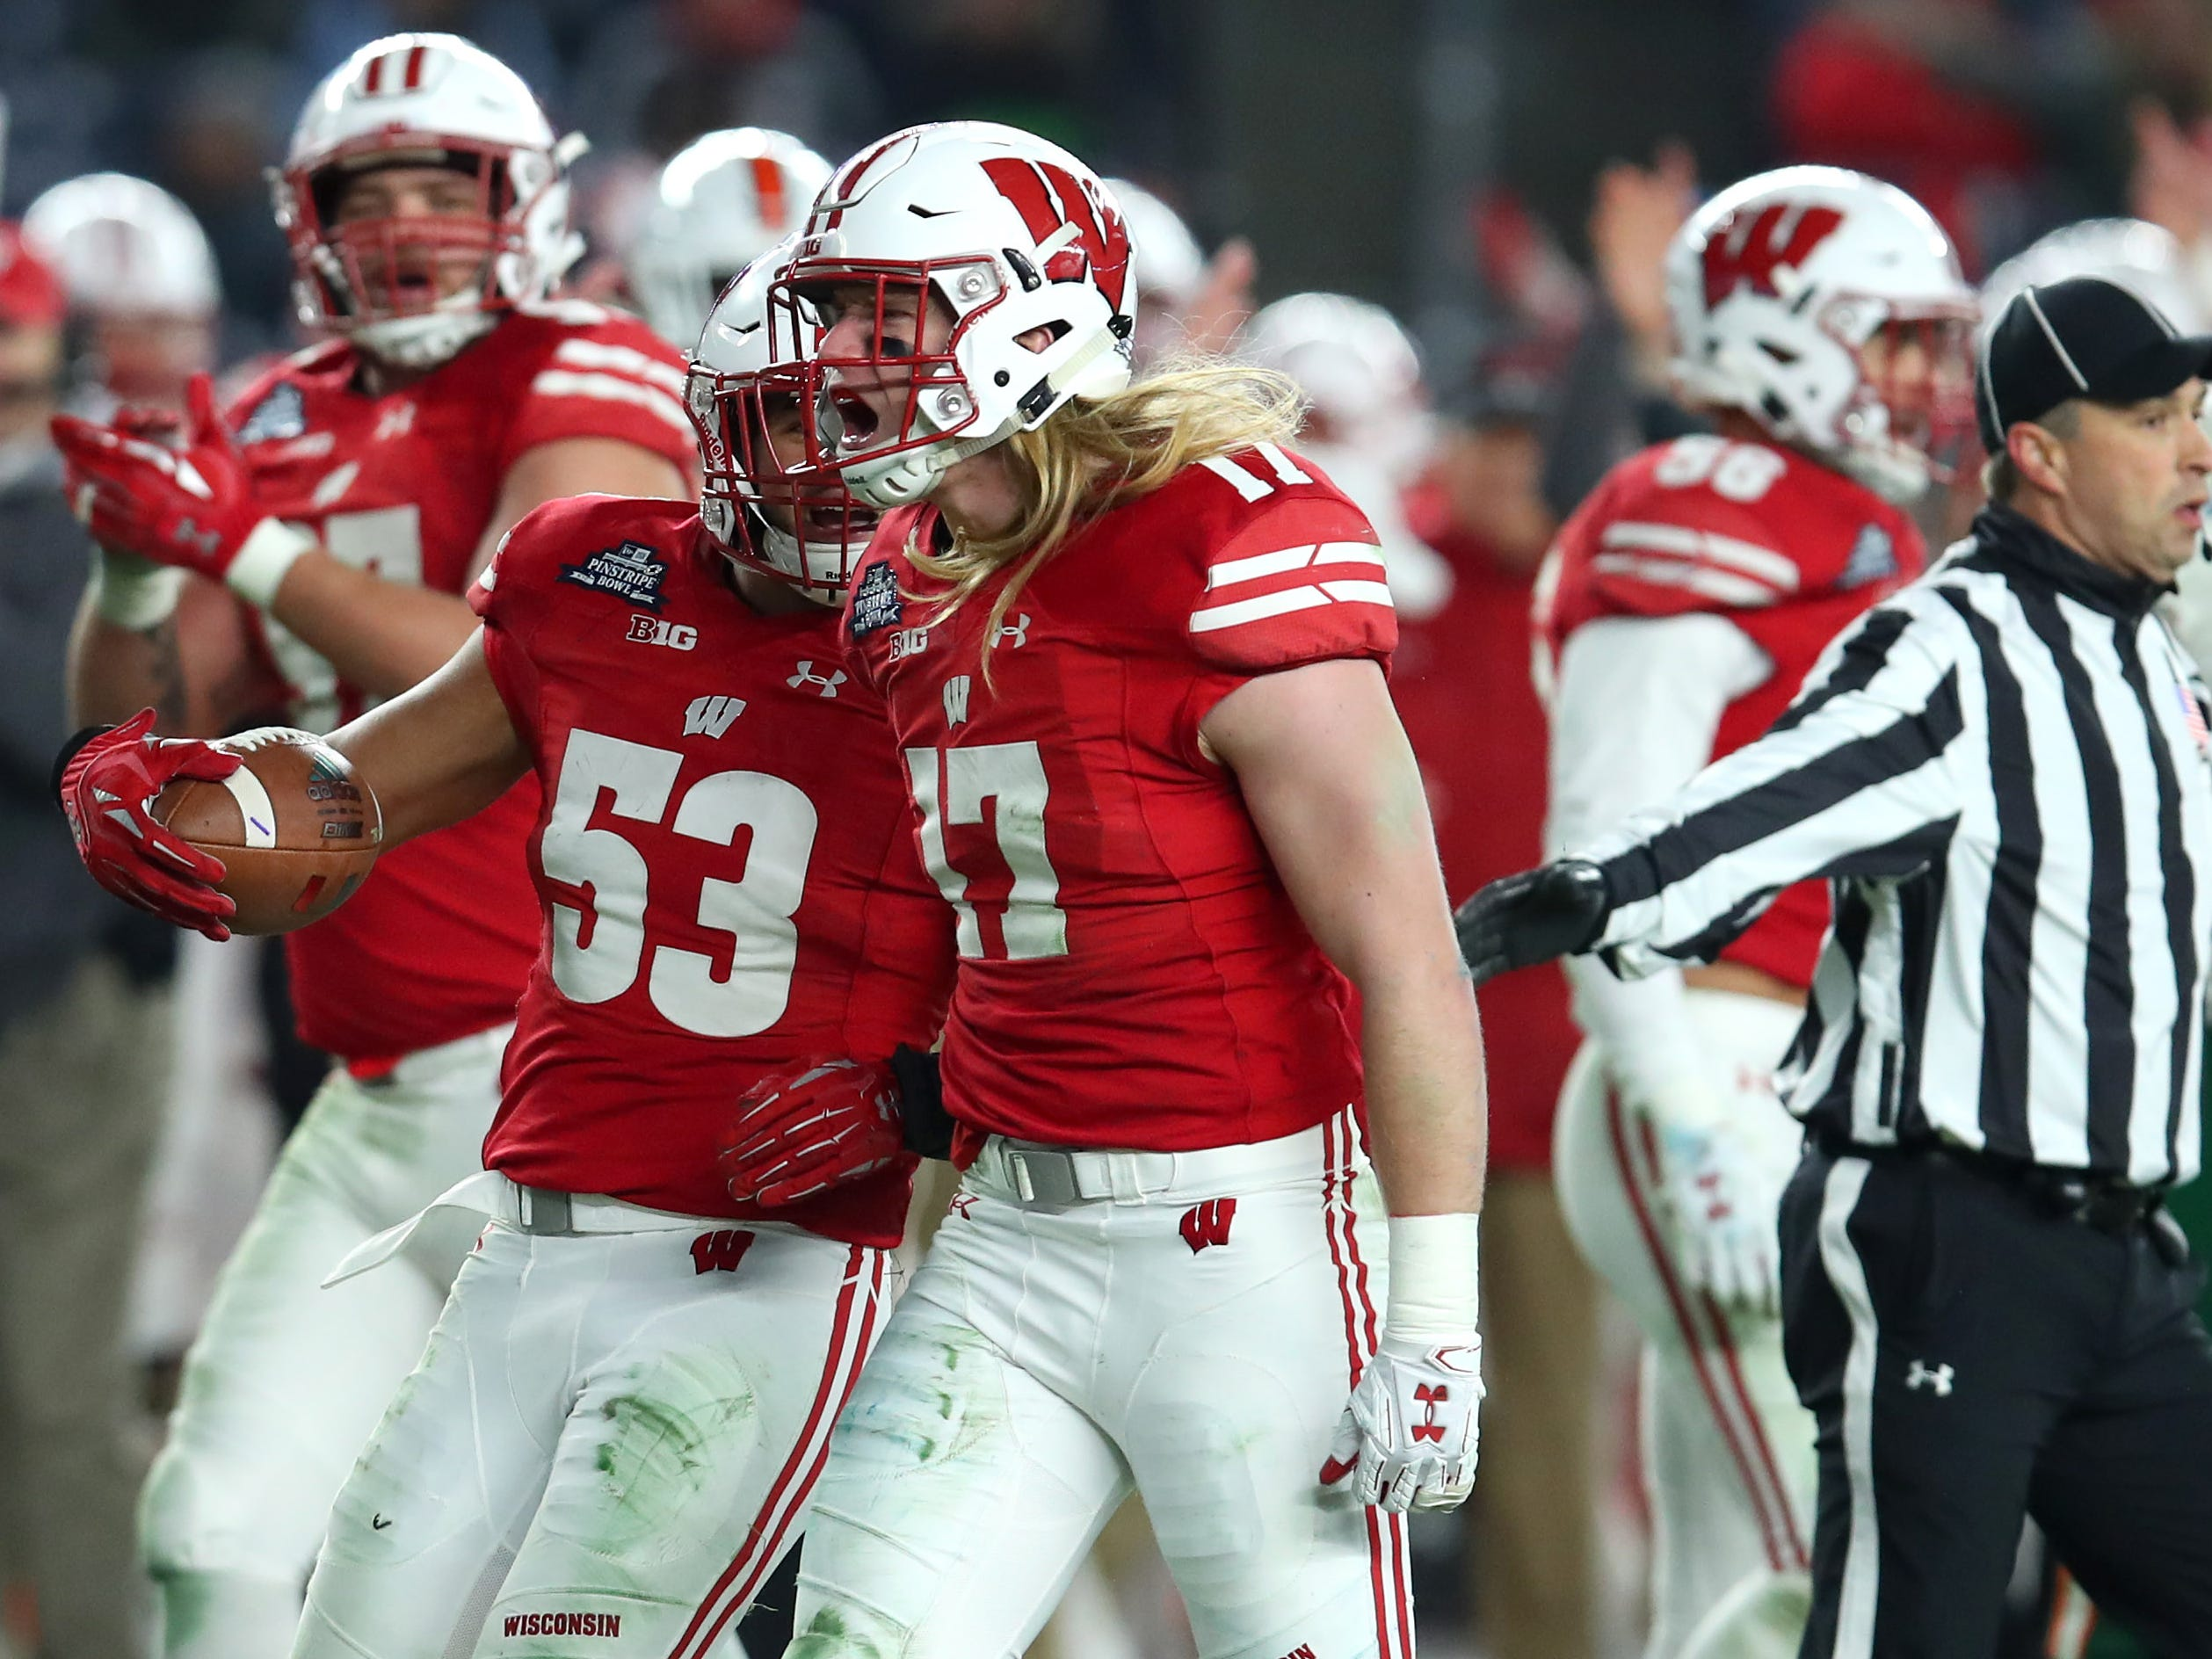 Wisconsin linebacker Andrew Van Ginkel (17) reacts to a defensive play with teammate T.J. Edwards (53) against  Miami during the second quarter in the Pinstripe Bowl at Yankee Stadium.